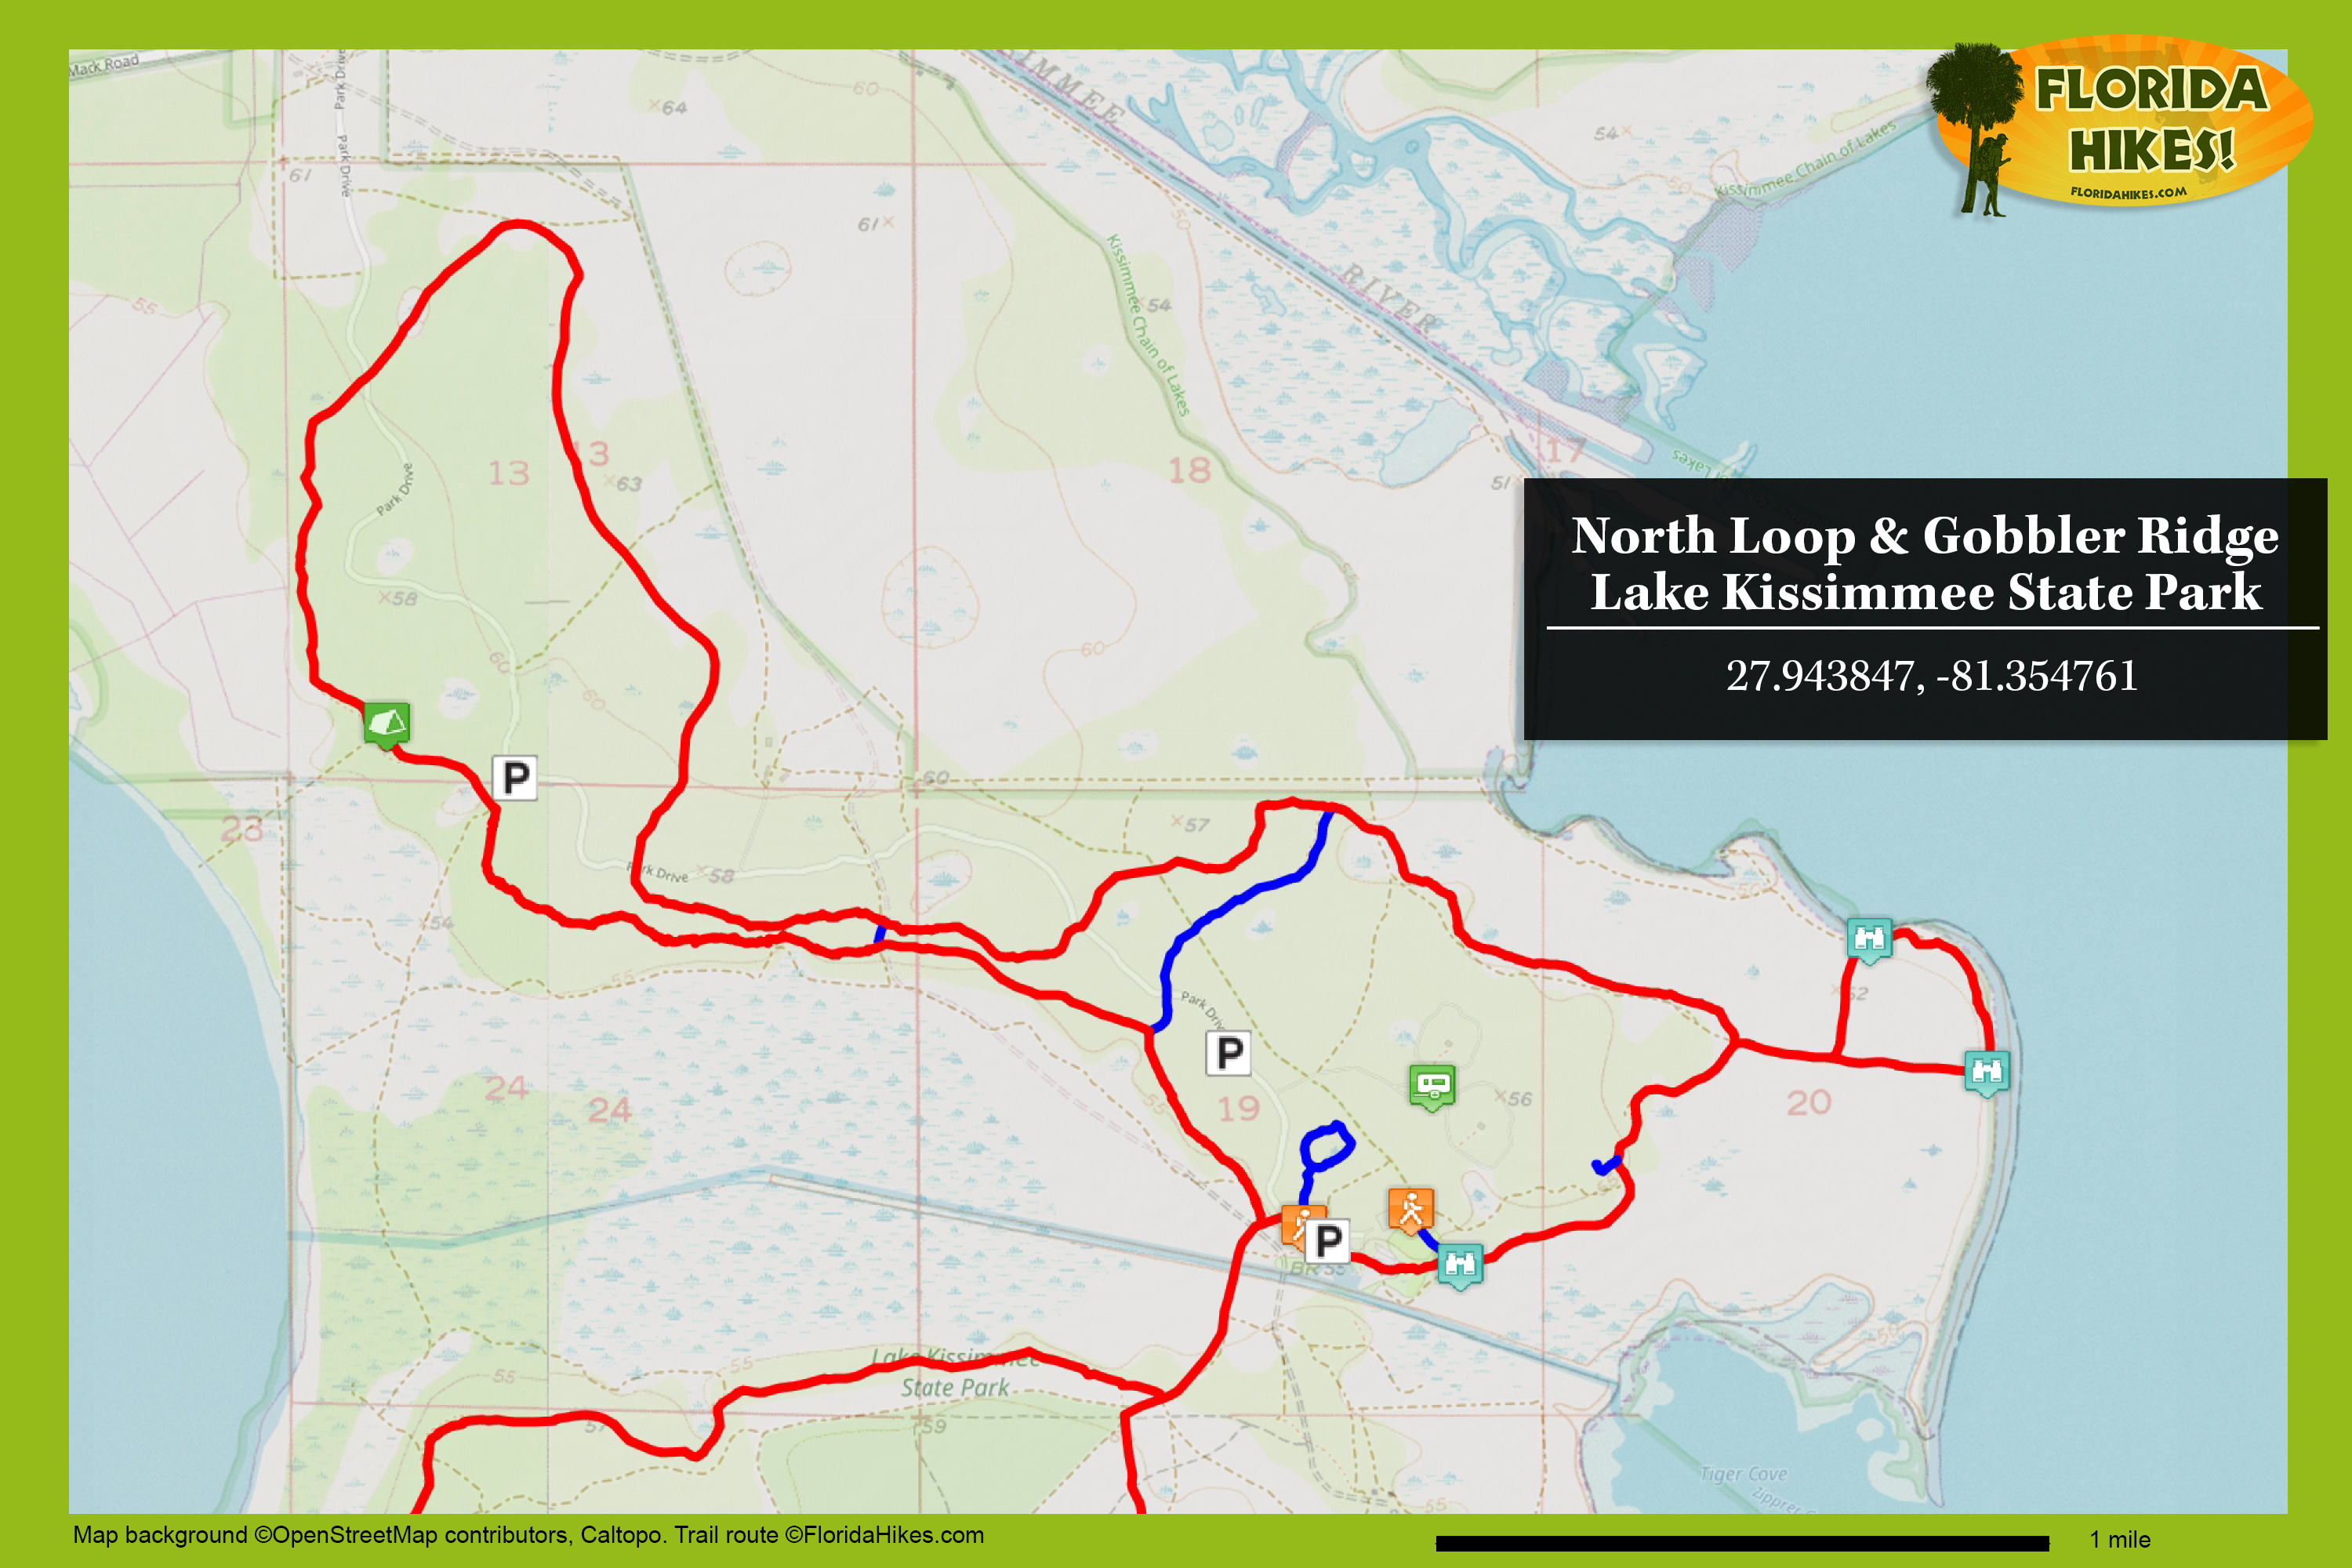 North Loop and Gobbler Ridge Trails   Florida Hikes! on kissimmee fl, kissimmee zip code 34741, kissimmee florida street map, kissimmee florida on map, kissimmee florida weather map,